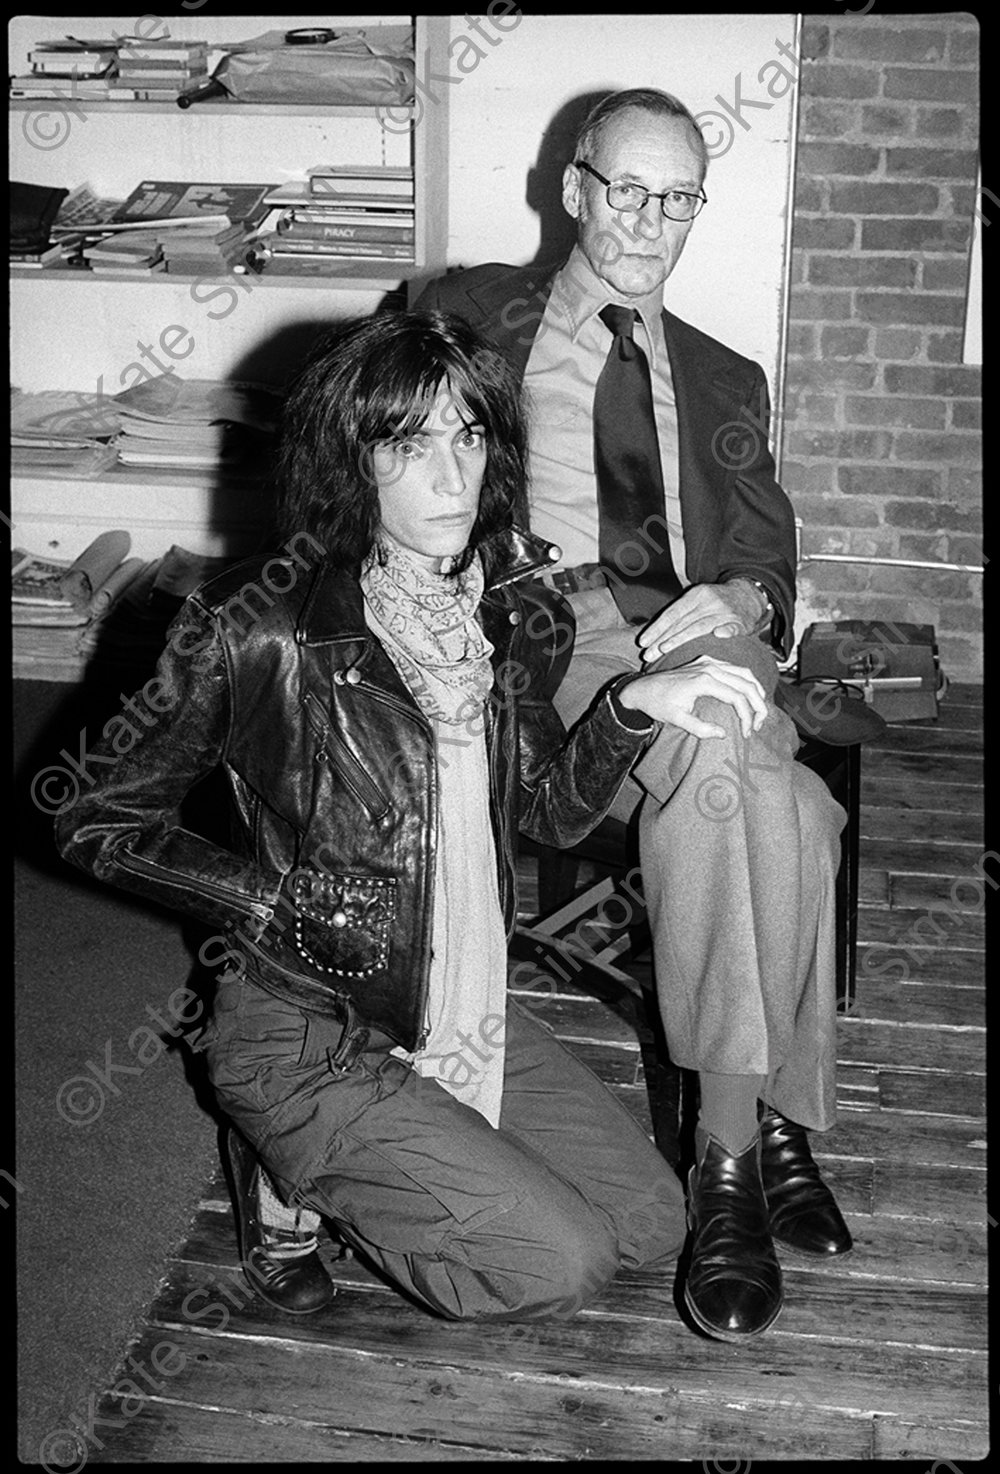 Patti Smith and William S. Burroughs